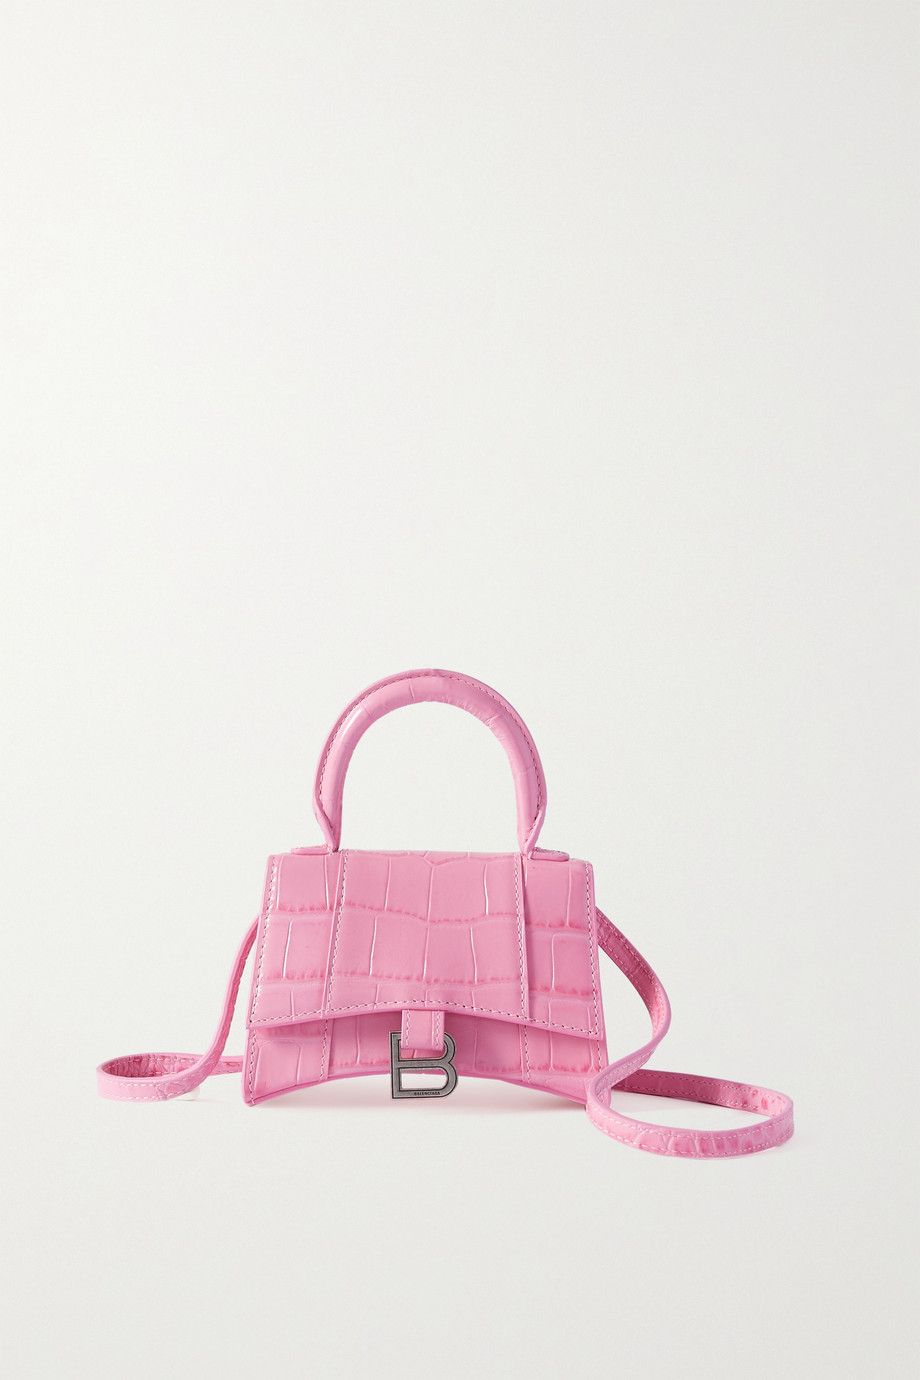 Balenciaga Hourglass nano croc-effect leather tote